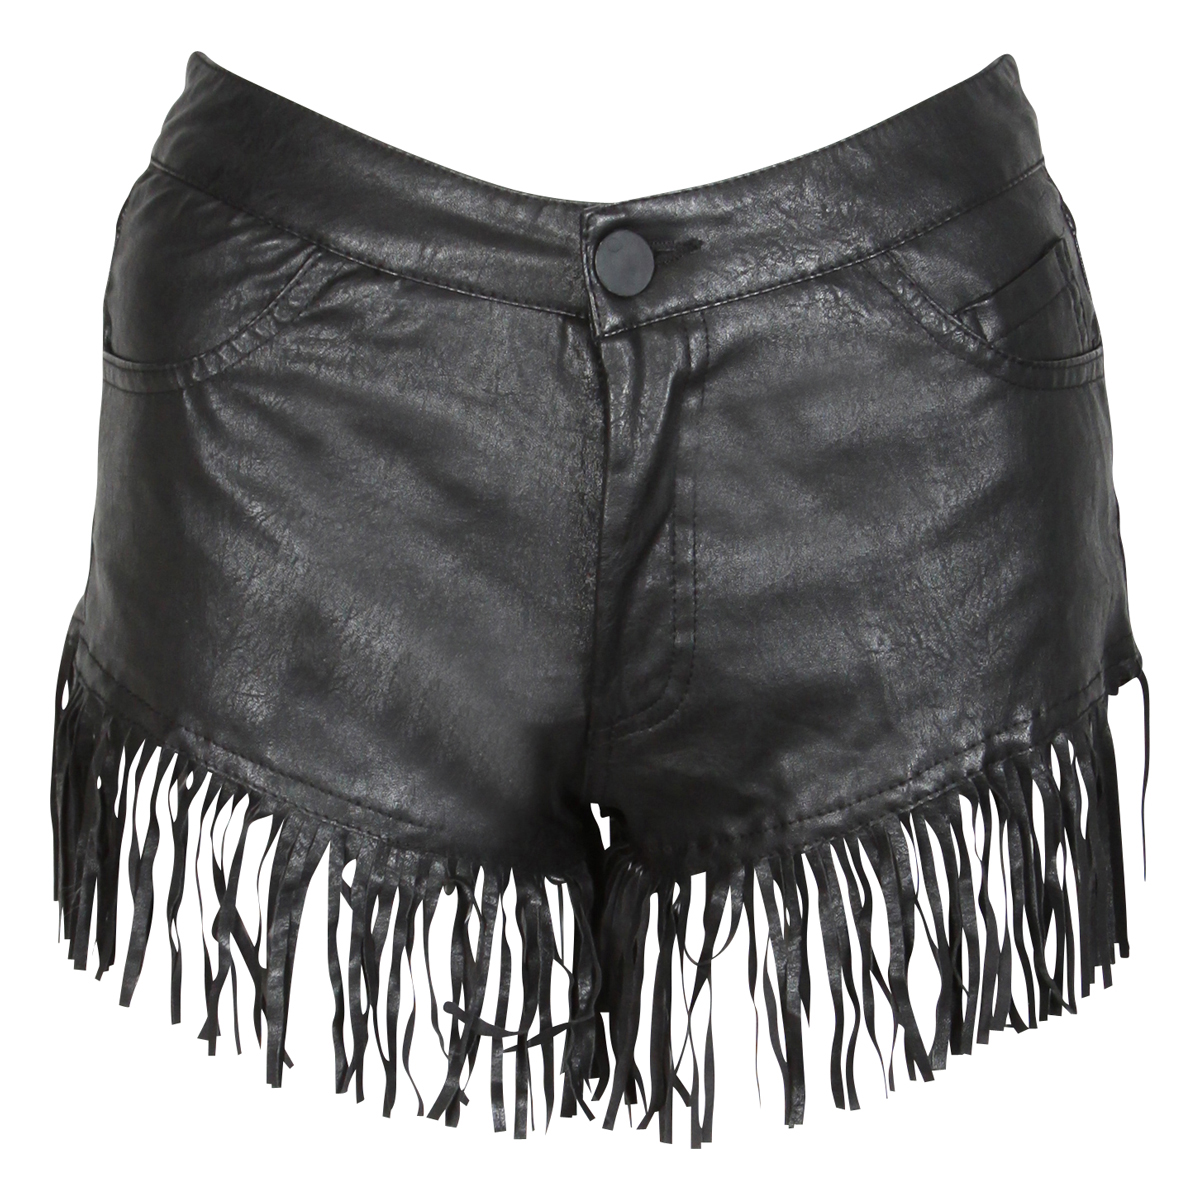 NEW WOMENS BLACK PU LEATHER TASSEL FRINGE SHORTS HOTPANTS LADIES ...